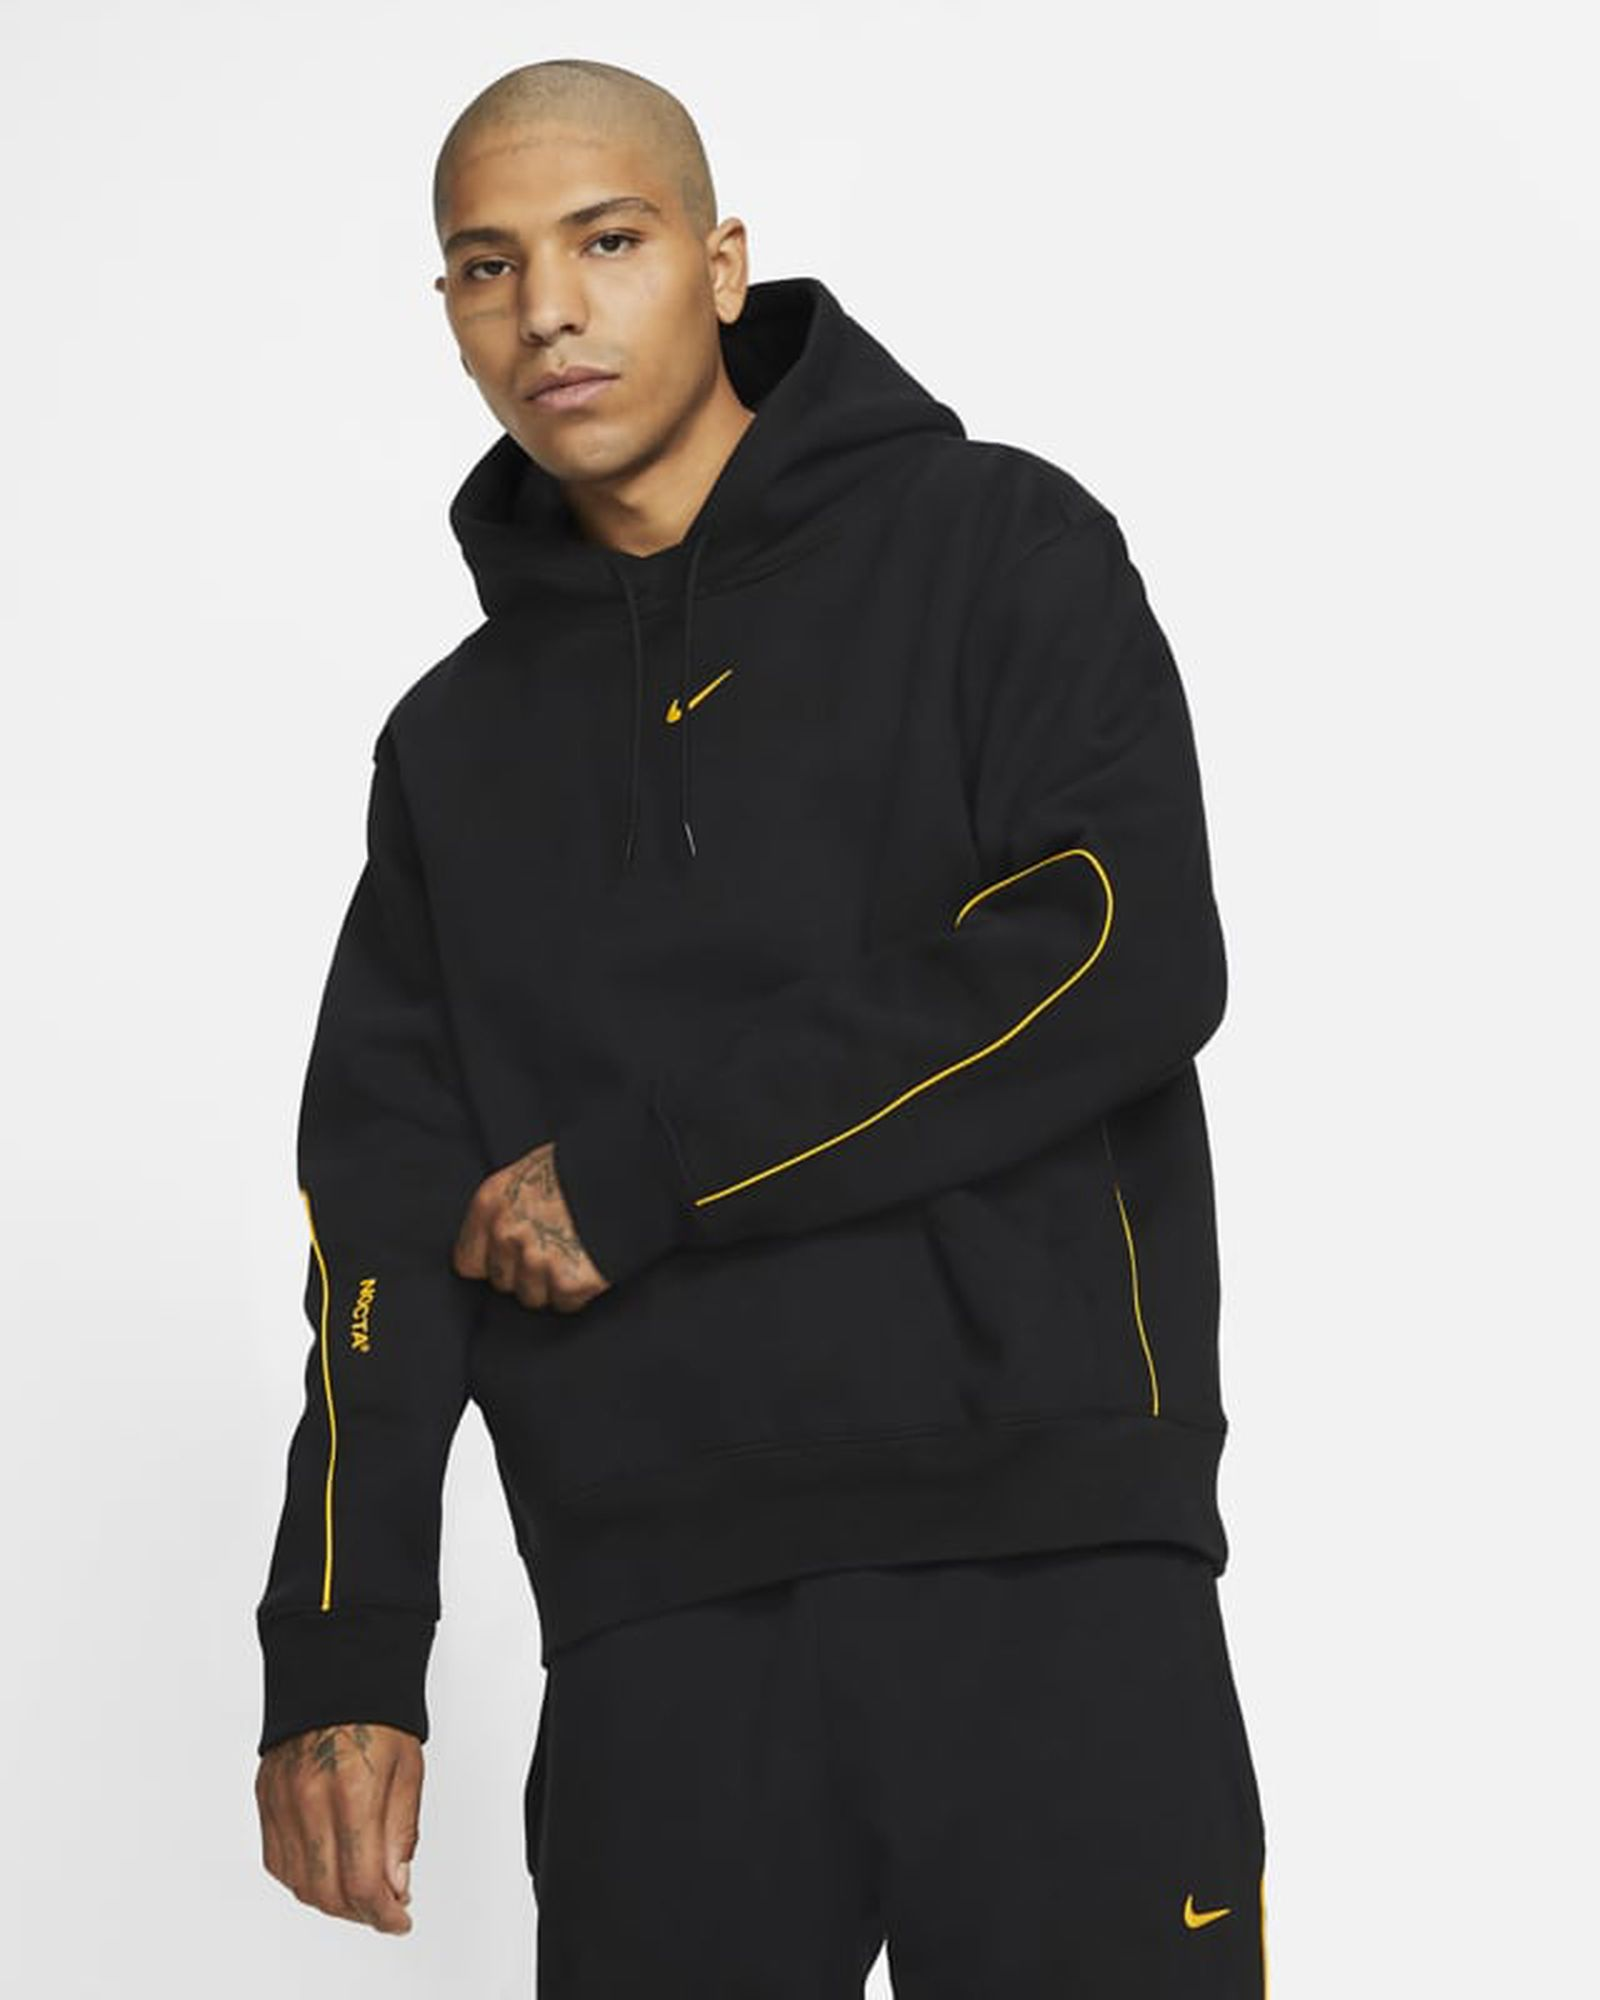 drake-nike-nocta-collection-release-date-price-01